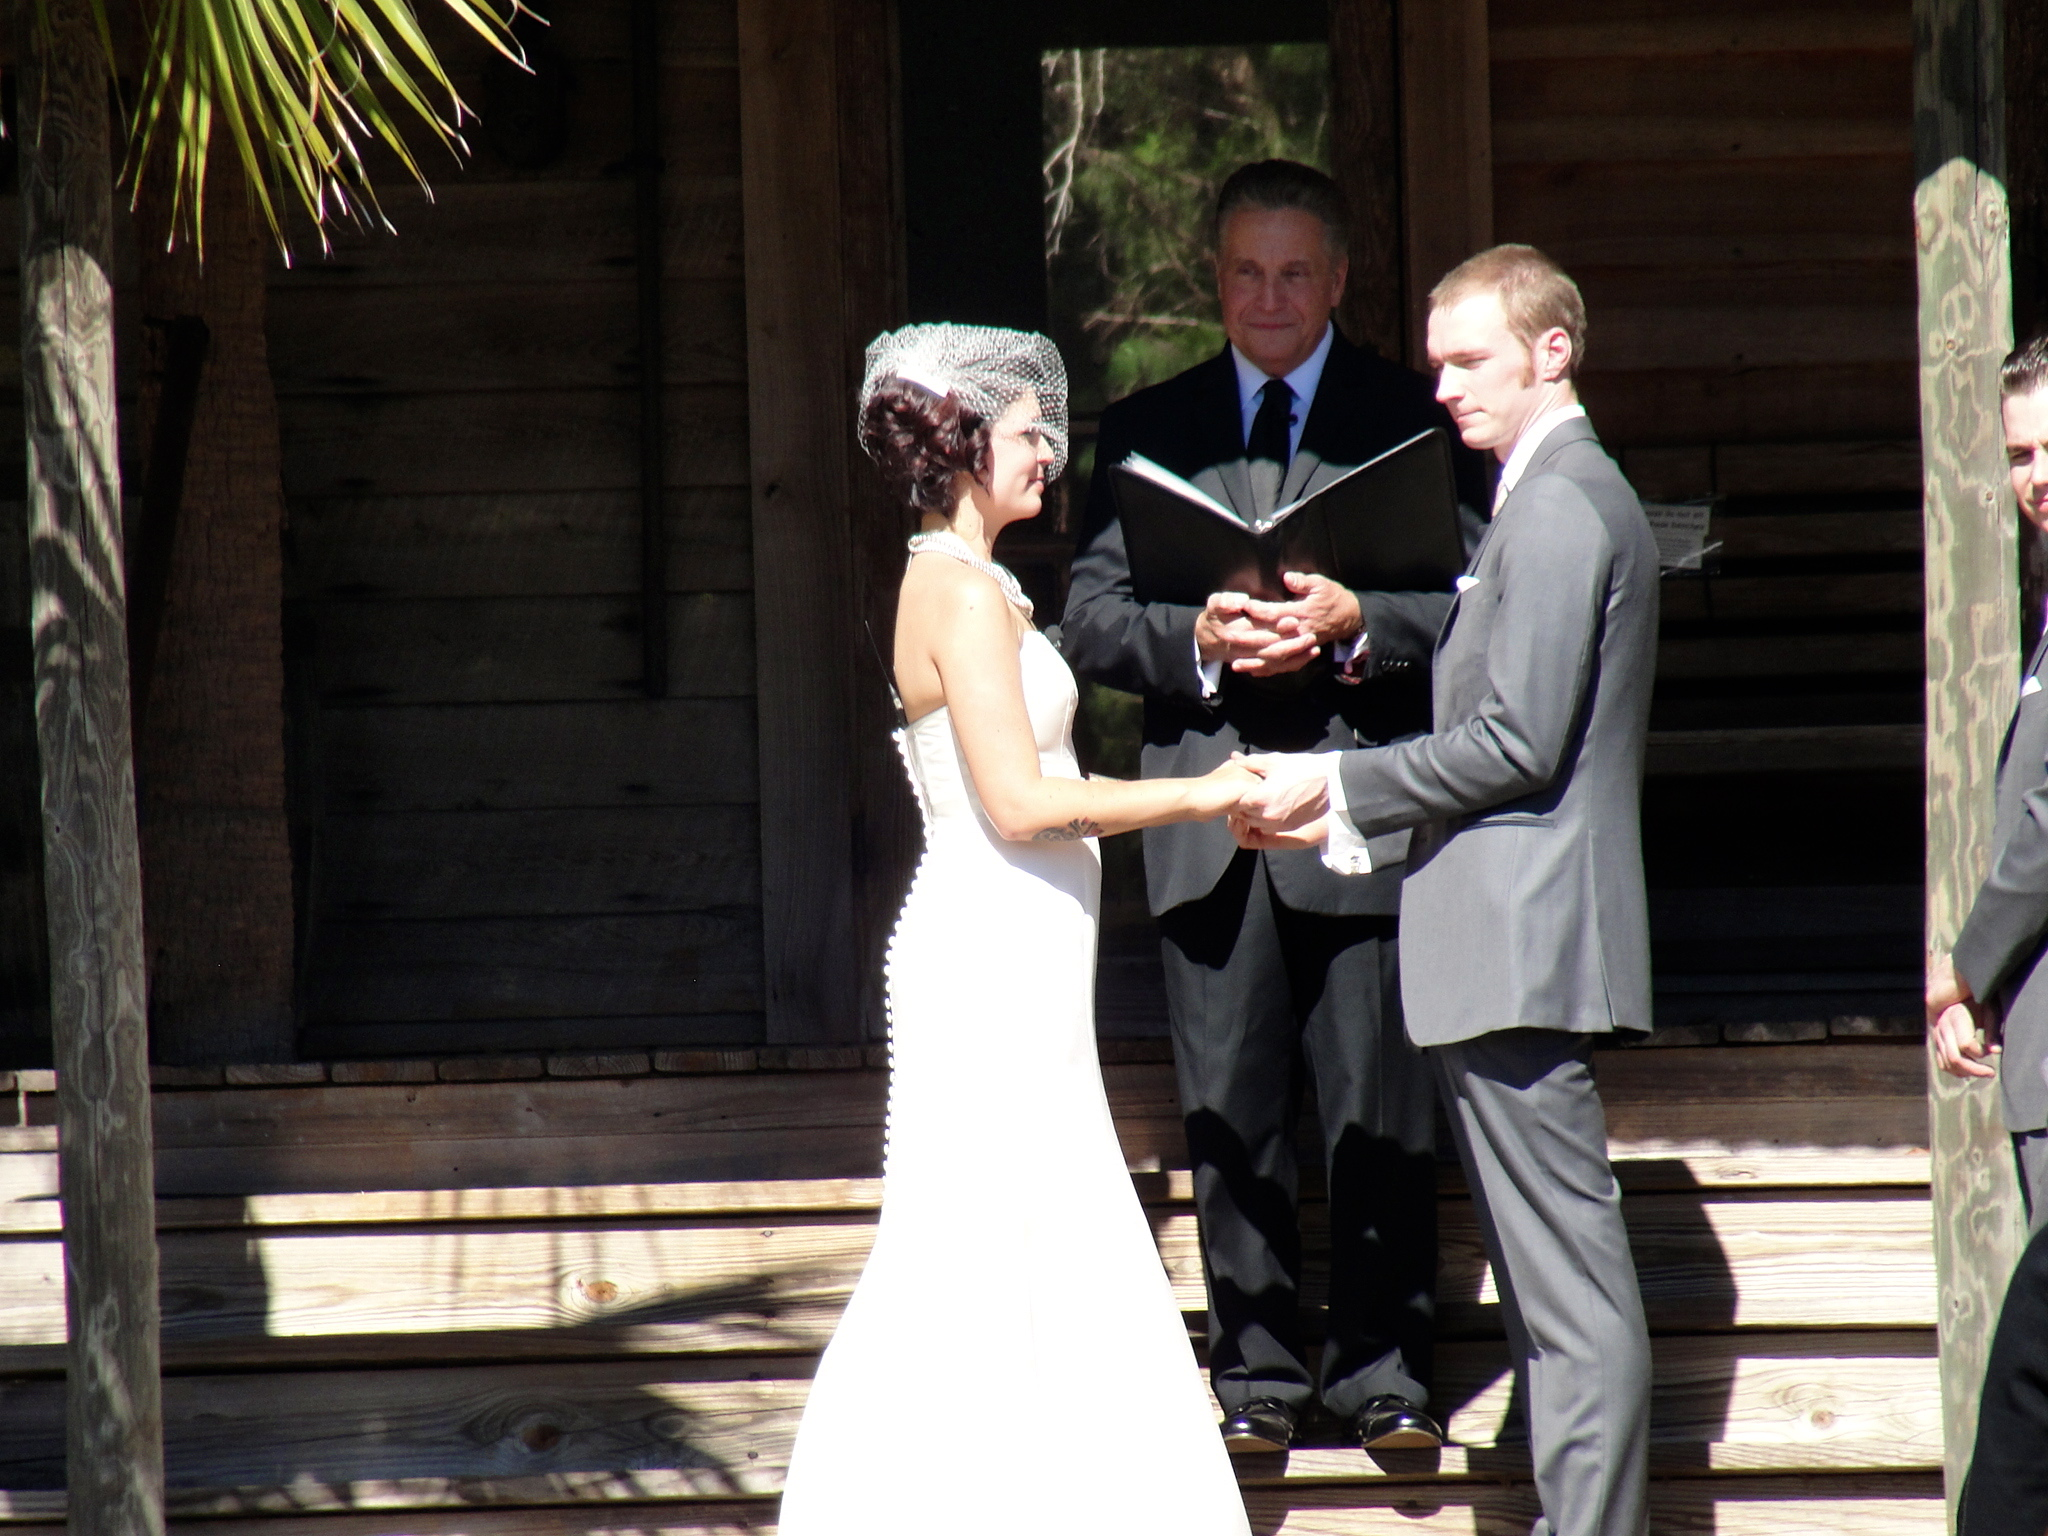 Fort Christmas Park | Sensational Ceremonies - Wedding Officiants